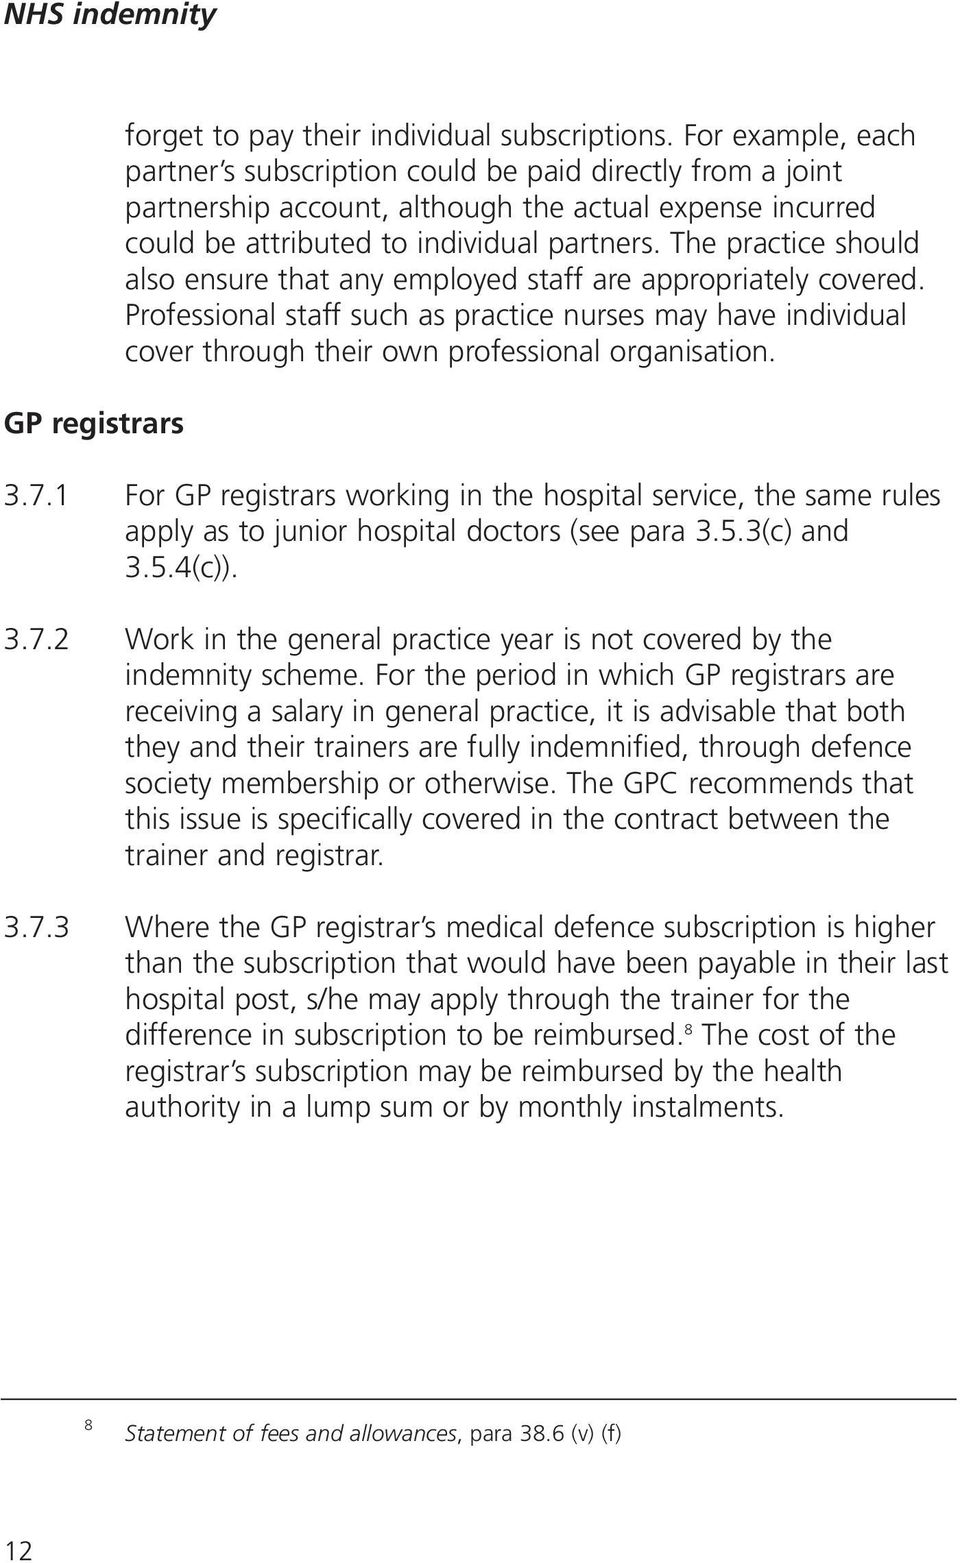 The practice should also ensure that any employed staff are appropriately covered. Professional staff such as practice nurses may have individual cover through their own professional organisation. 3.